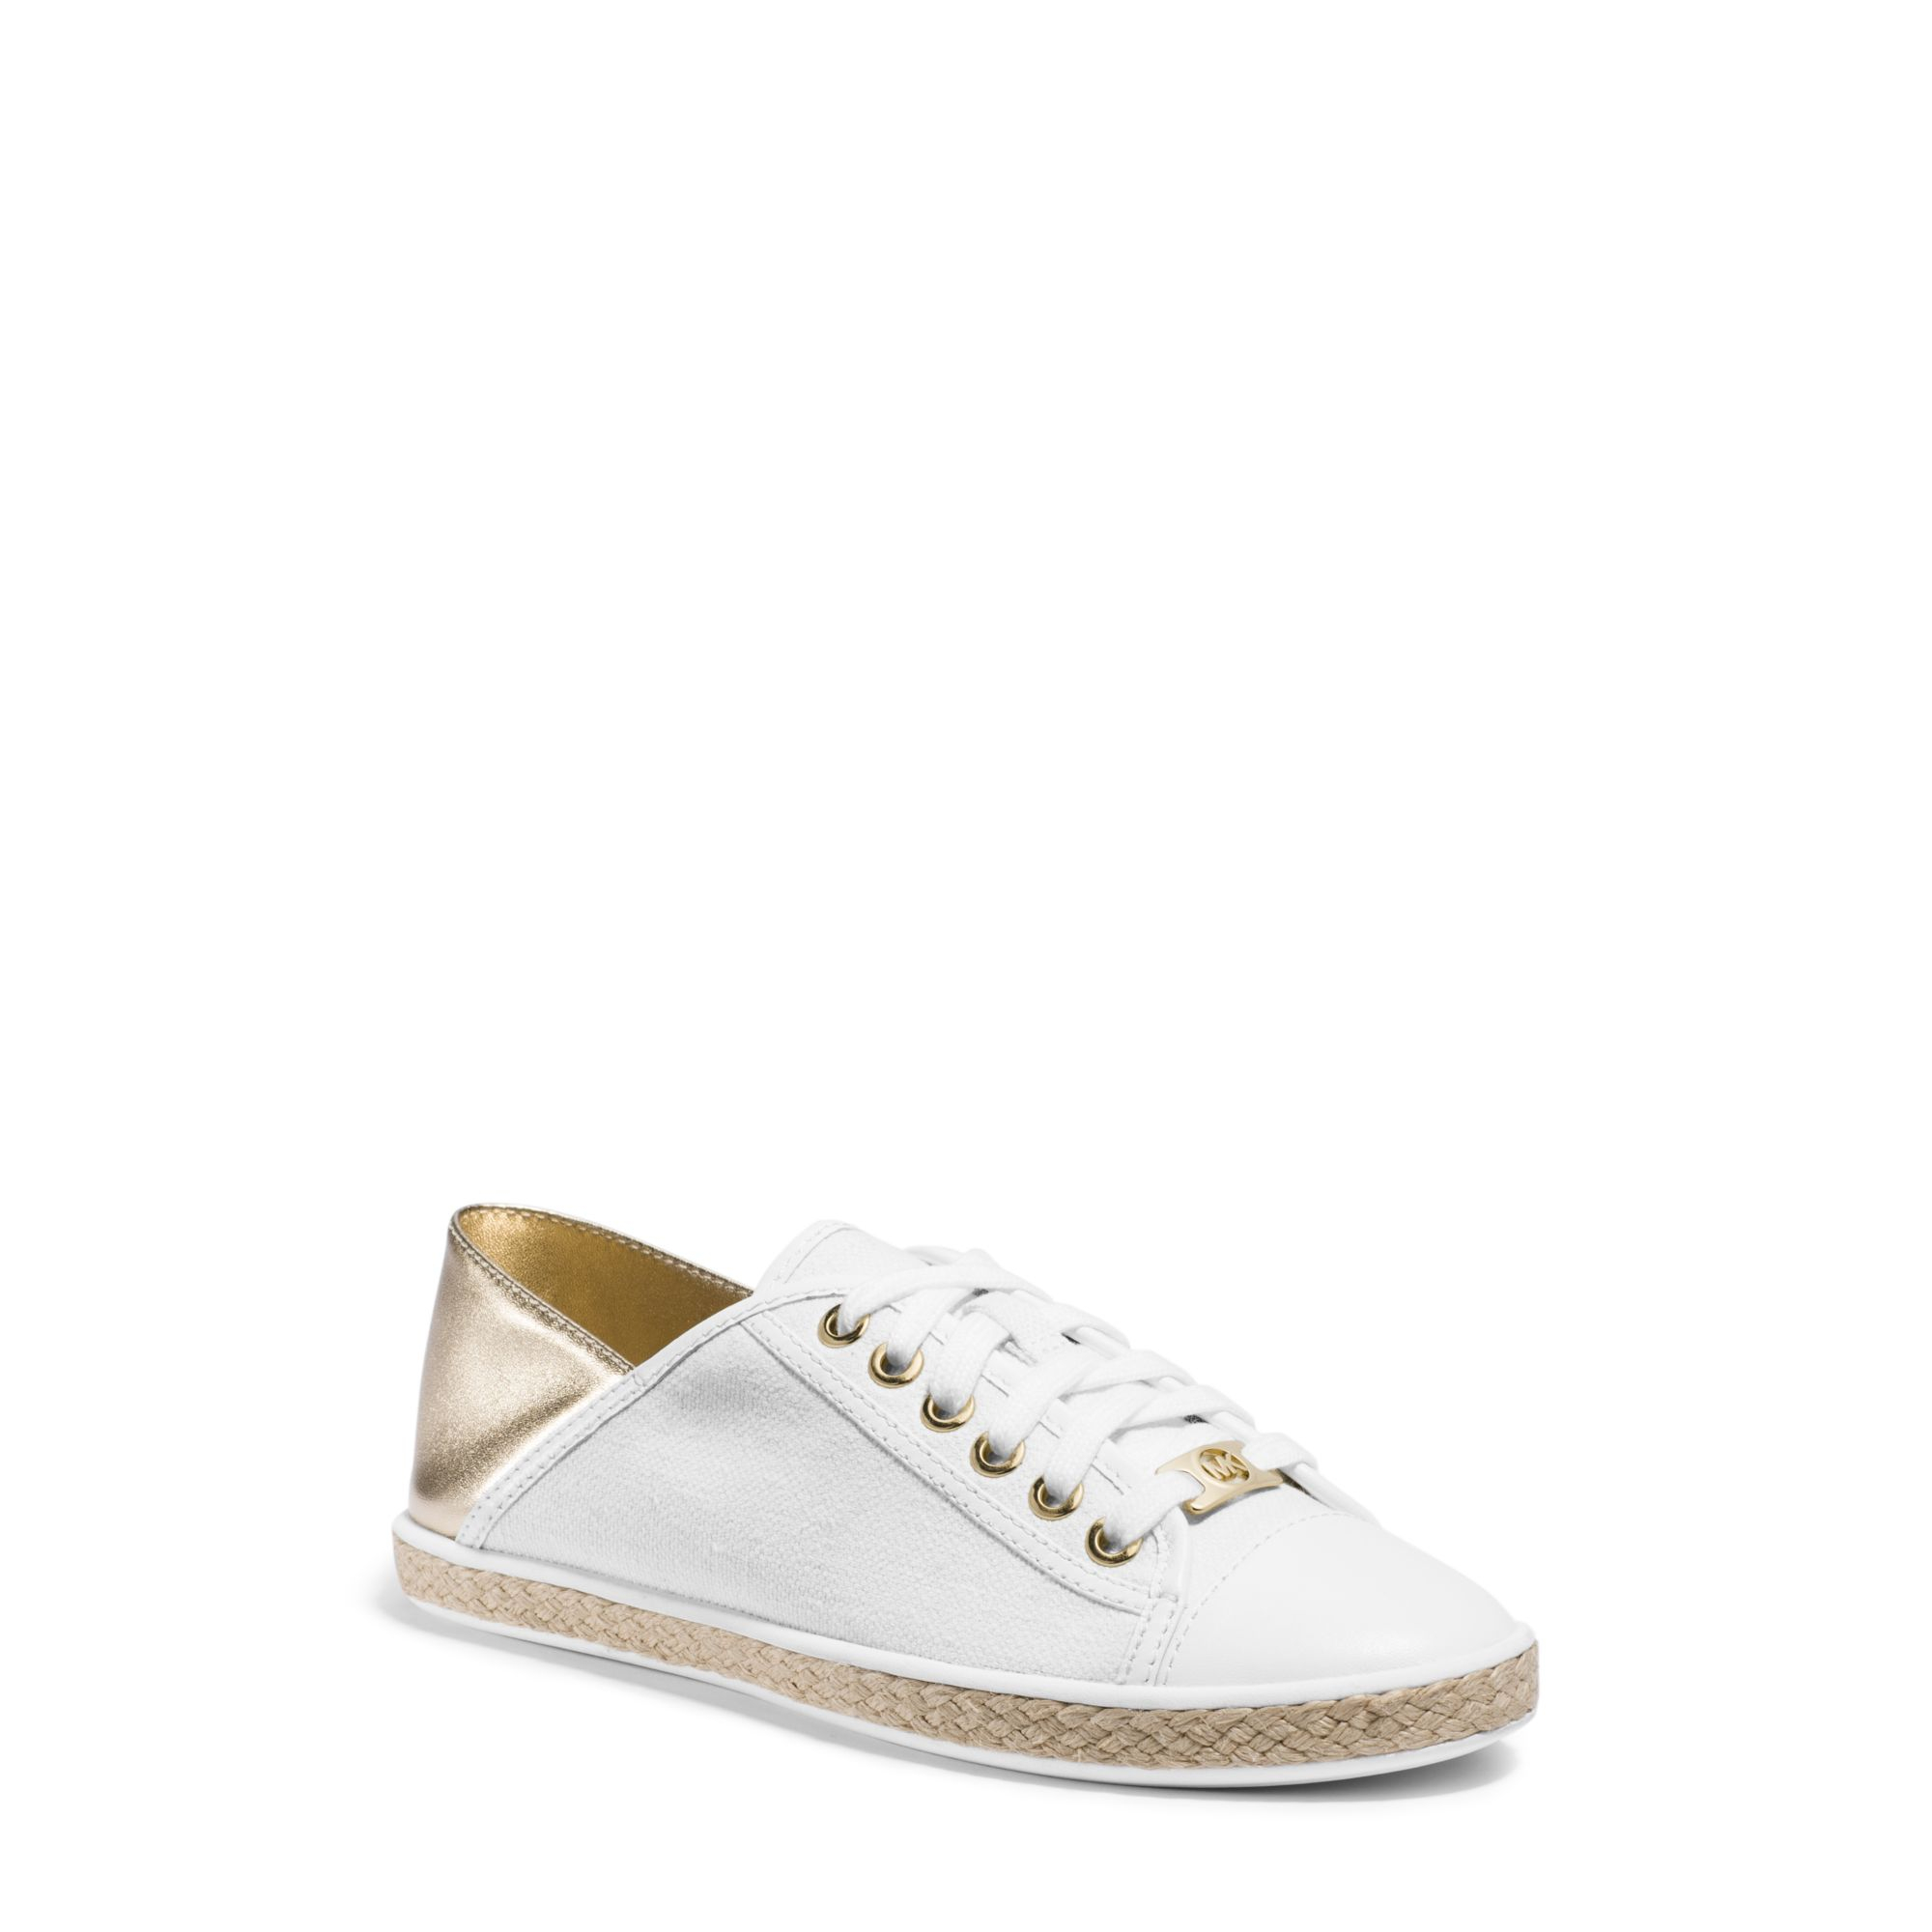 209d7d9758b7 Lyst - Michael Kors Kristy Canvas And Leather Sneaker in Metallic